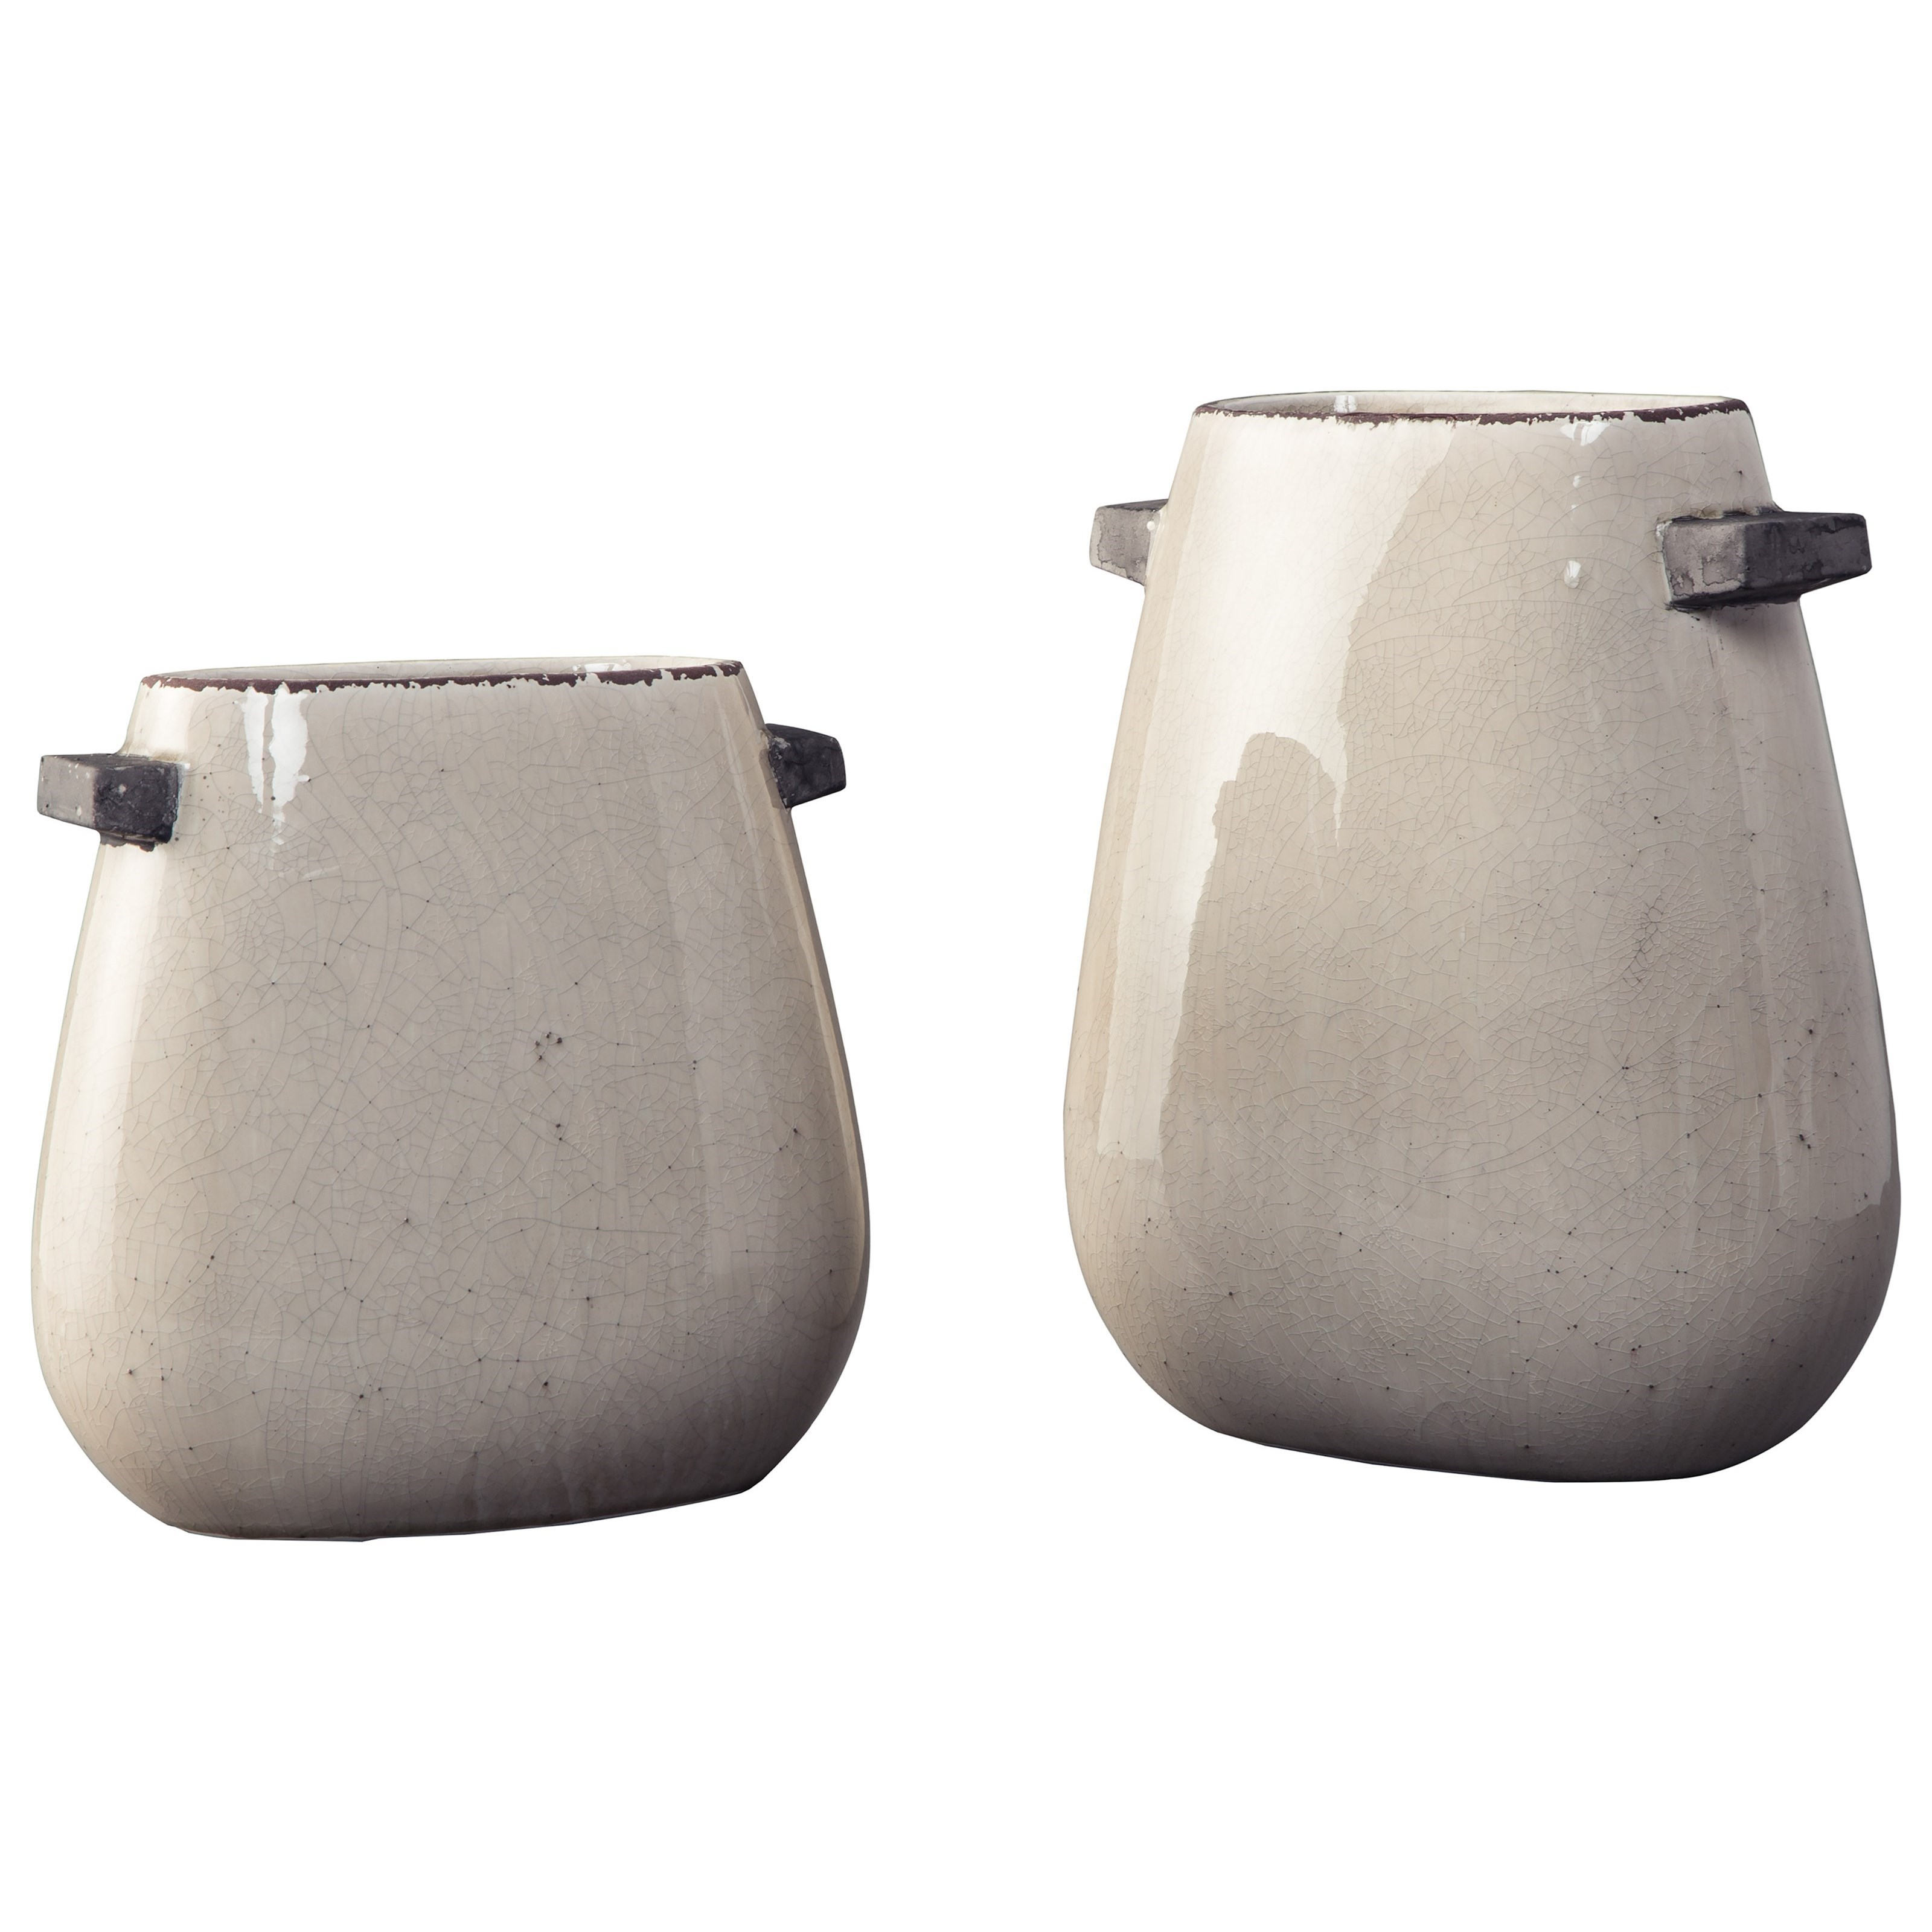 Accents Diah Tan Vase Set by Benchcraft at Virginia Furniture Market